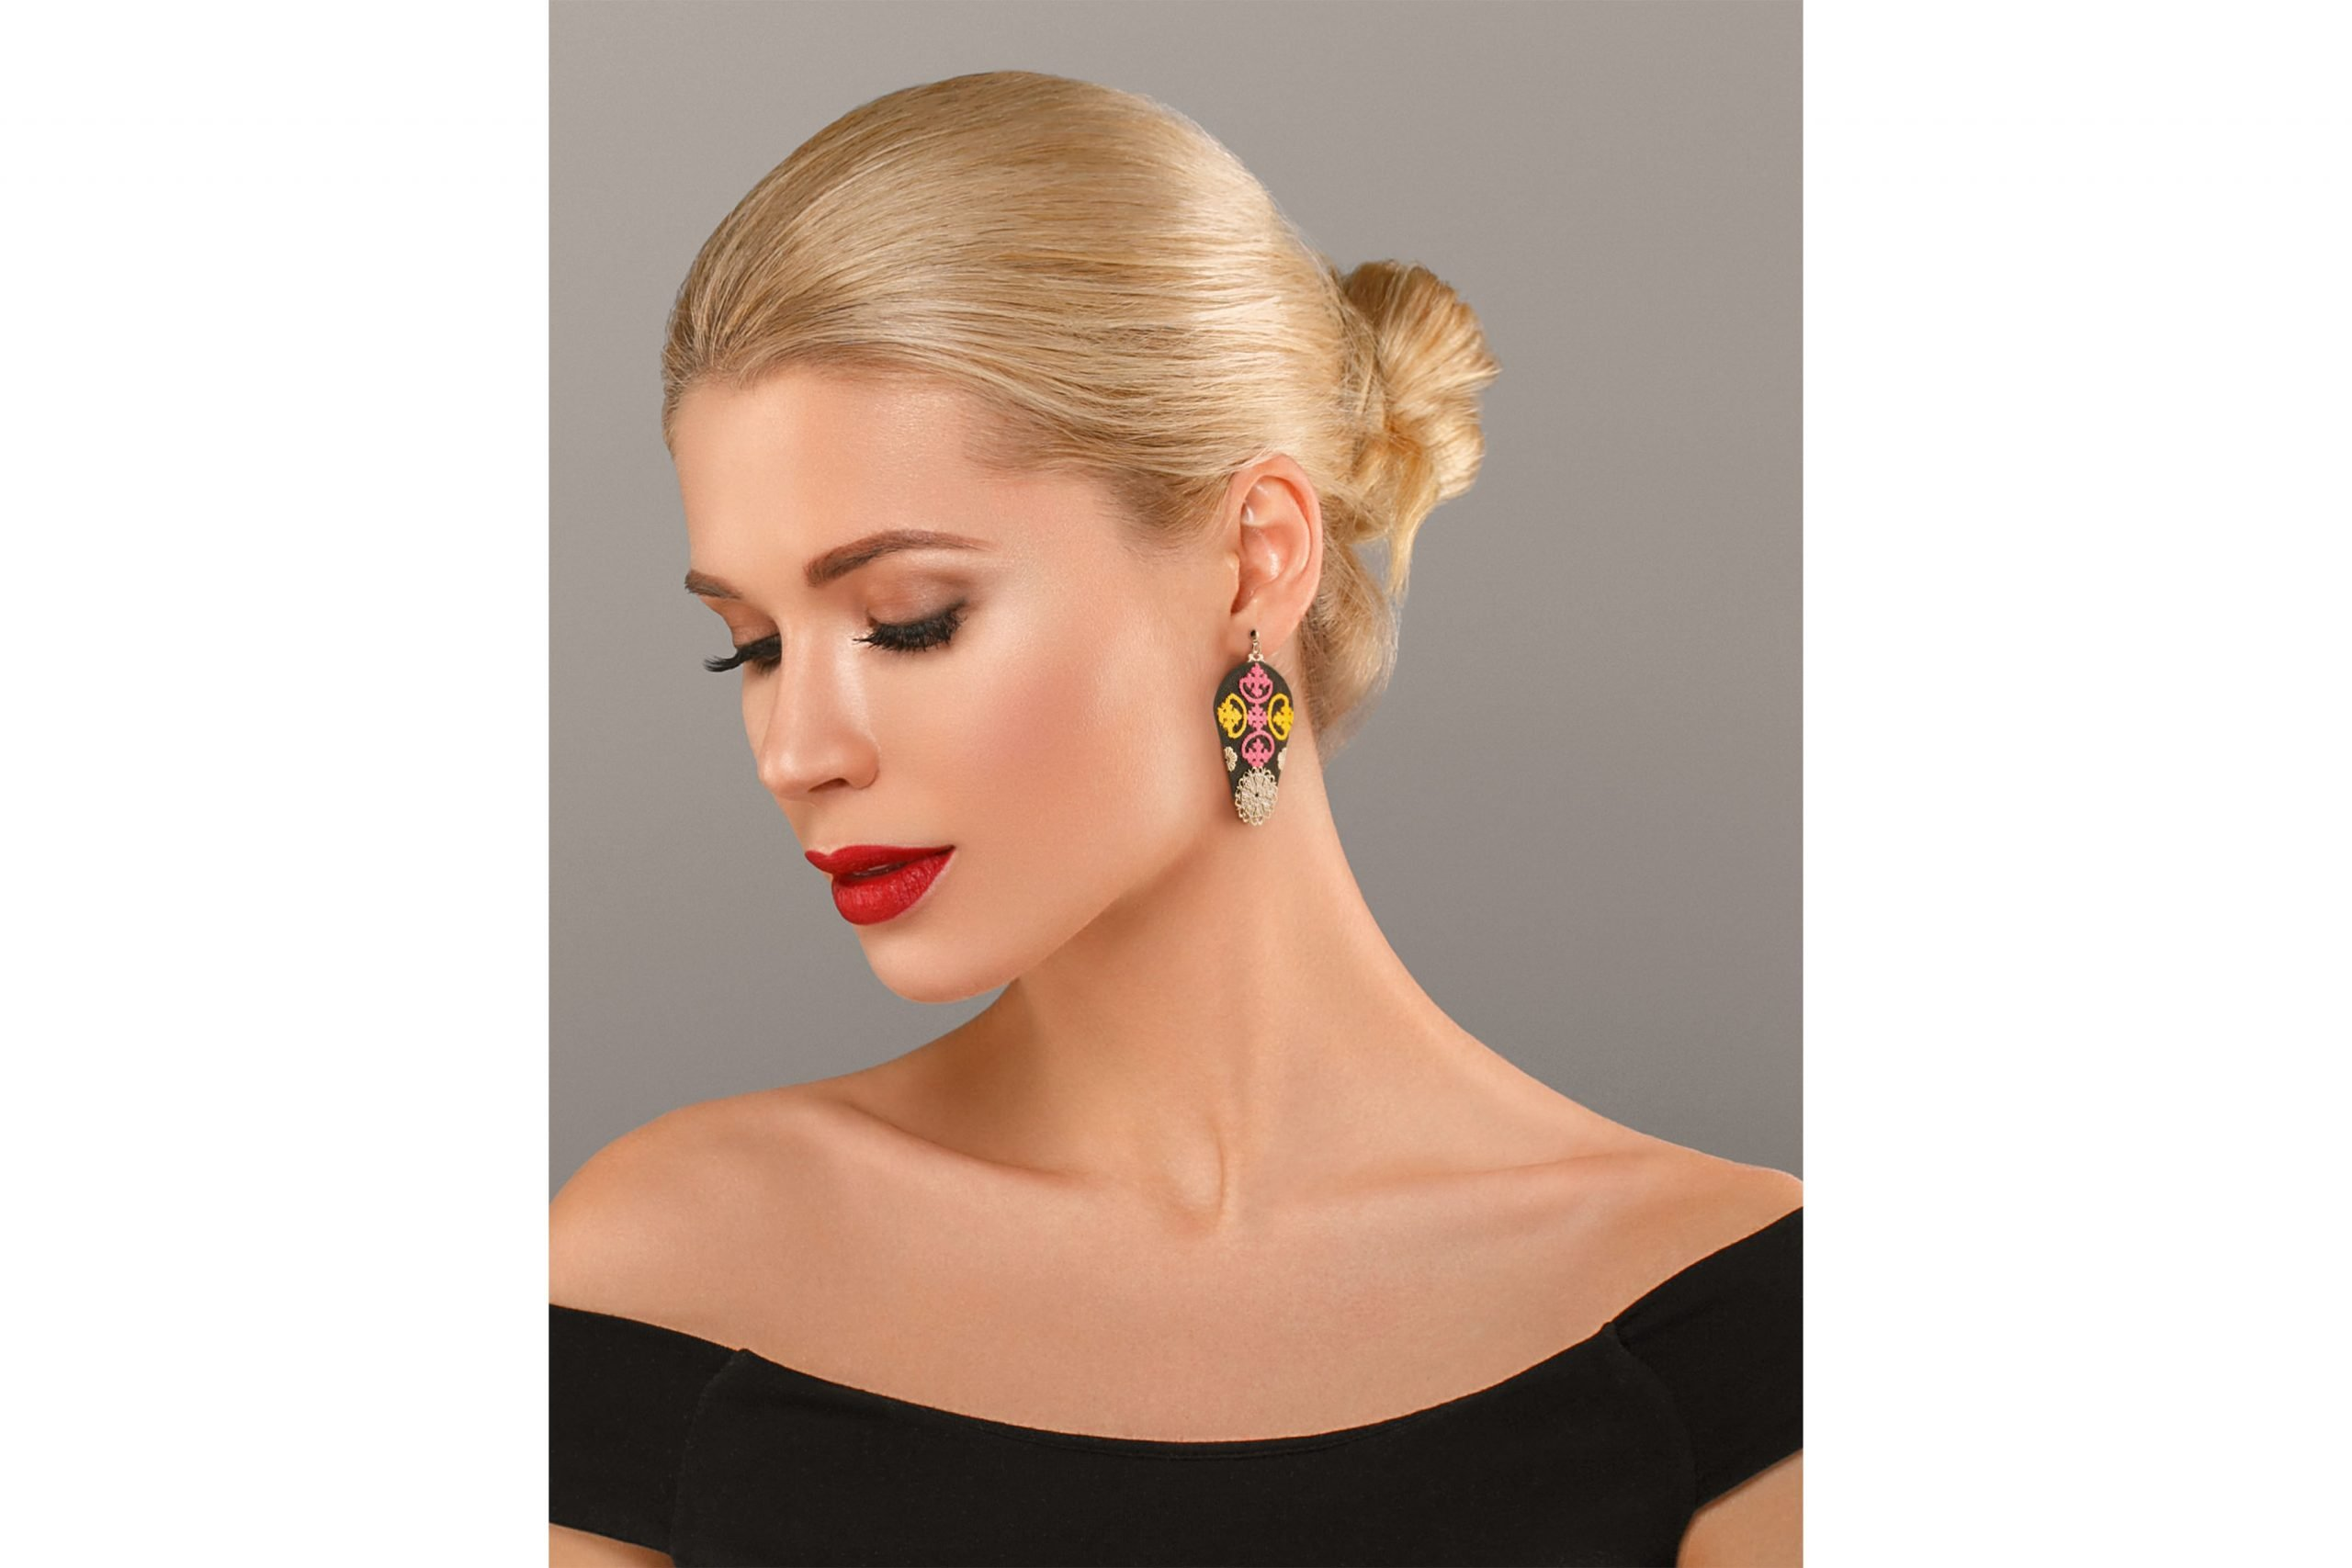 Woman nail manicure lipstick same color beauty portrait with Persian Balochi embroidery earring